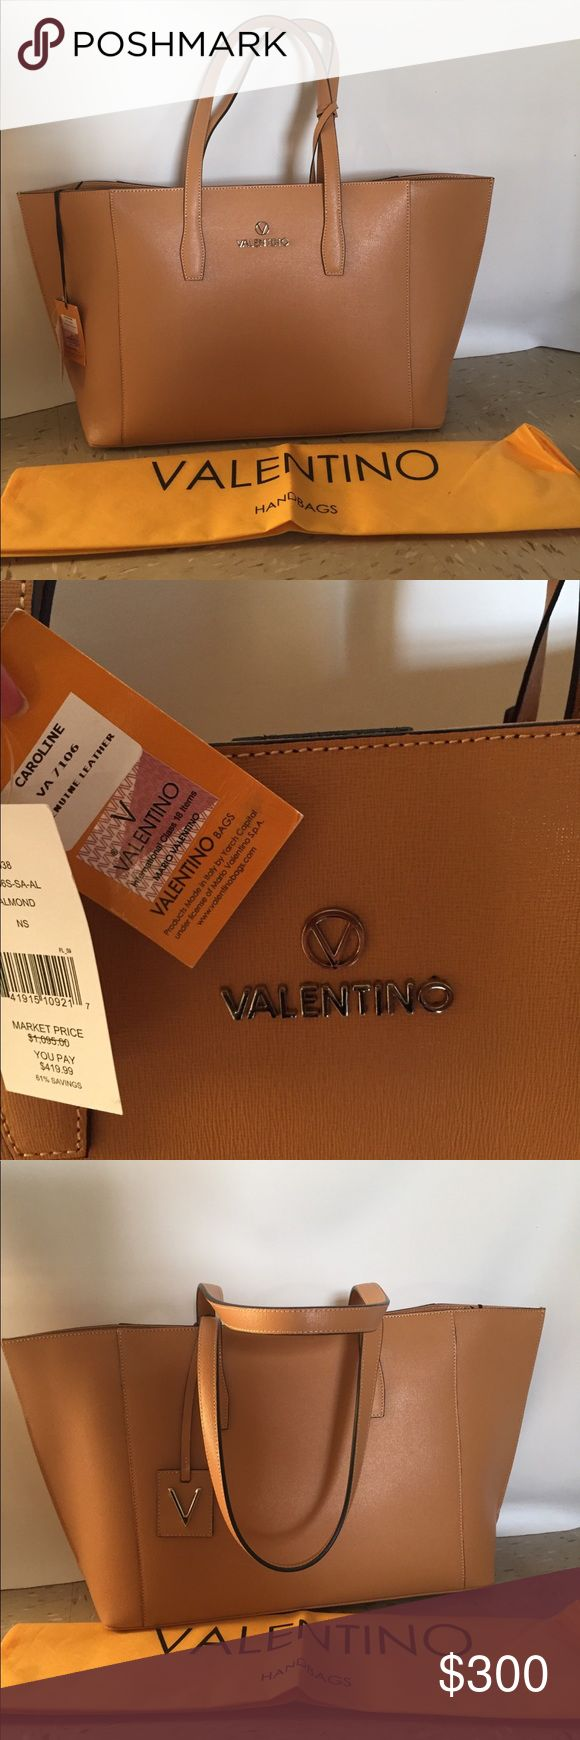 Valentino By Mario Valentino Caroline tote Authentic sold at at saksofffith Valentino By Mario Valentino Tote  Refer to picture for bag measurements and details ☺️ Mario Valentino Bags Totes